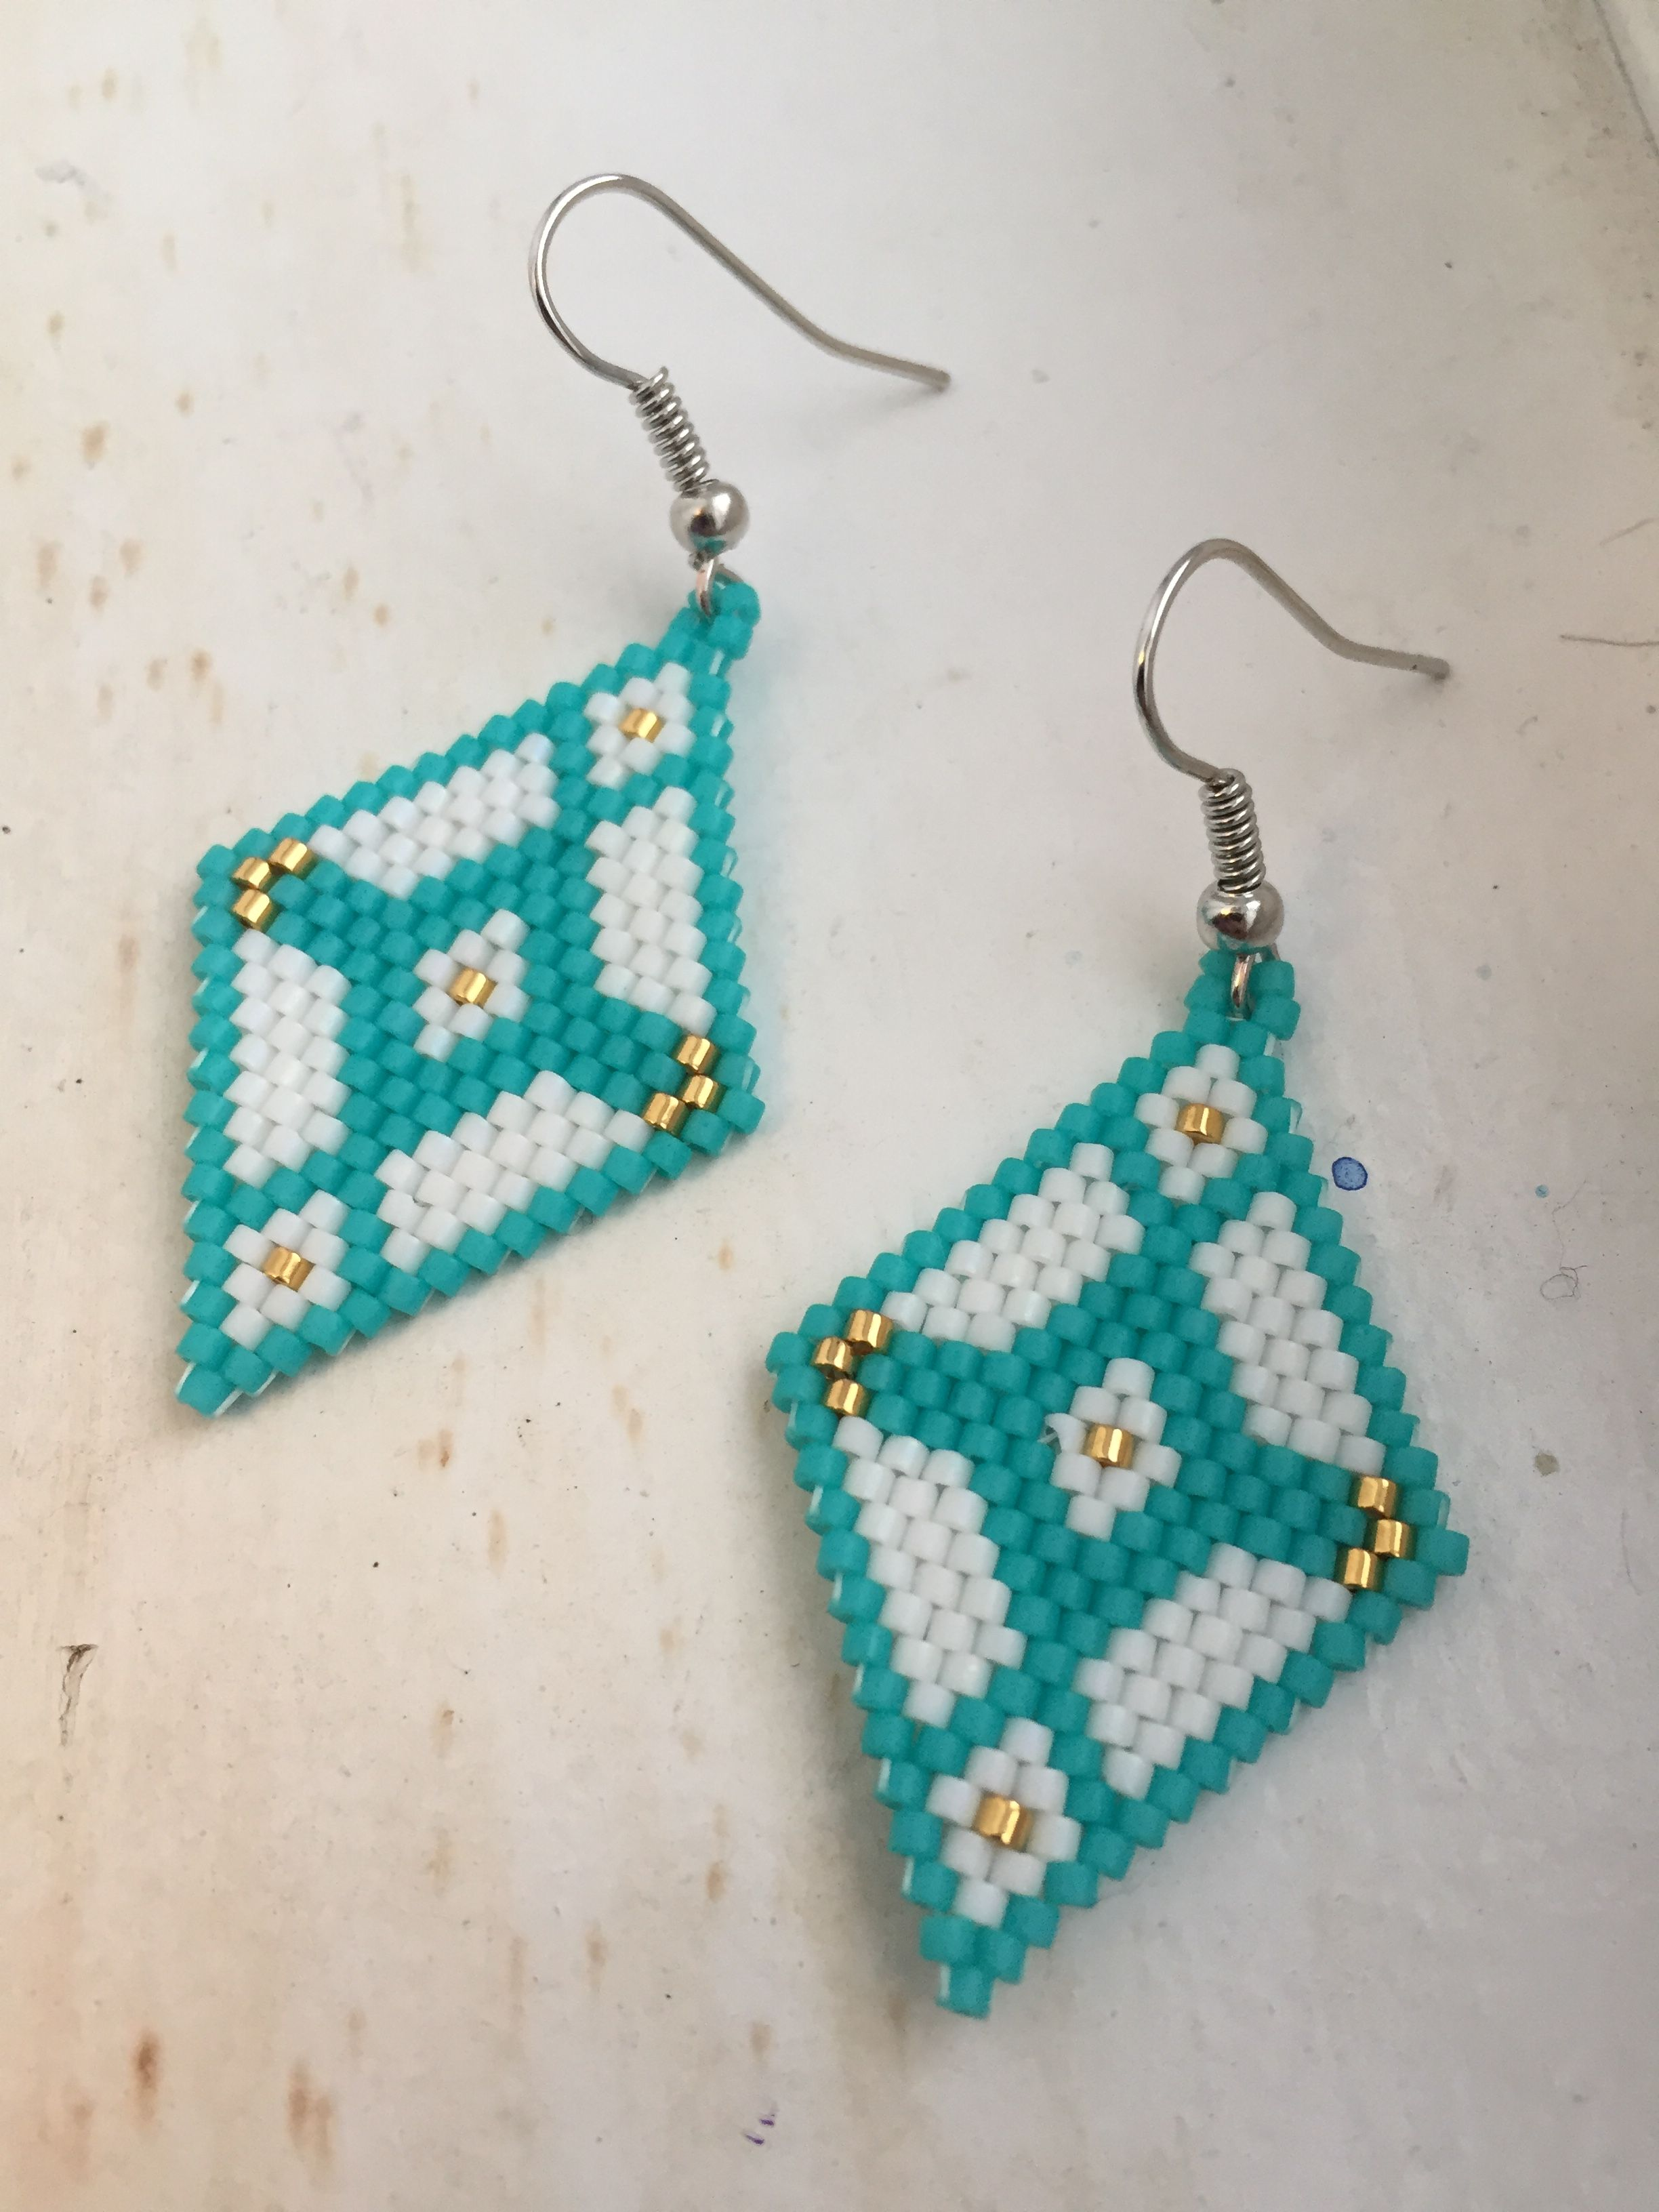 Native American Beaded Earrings Patterns Free Best Inspiration Design